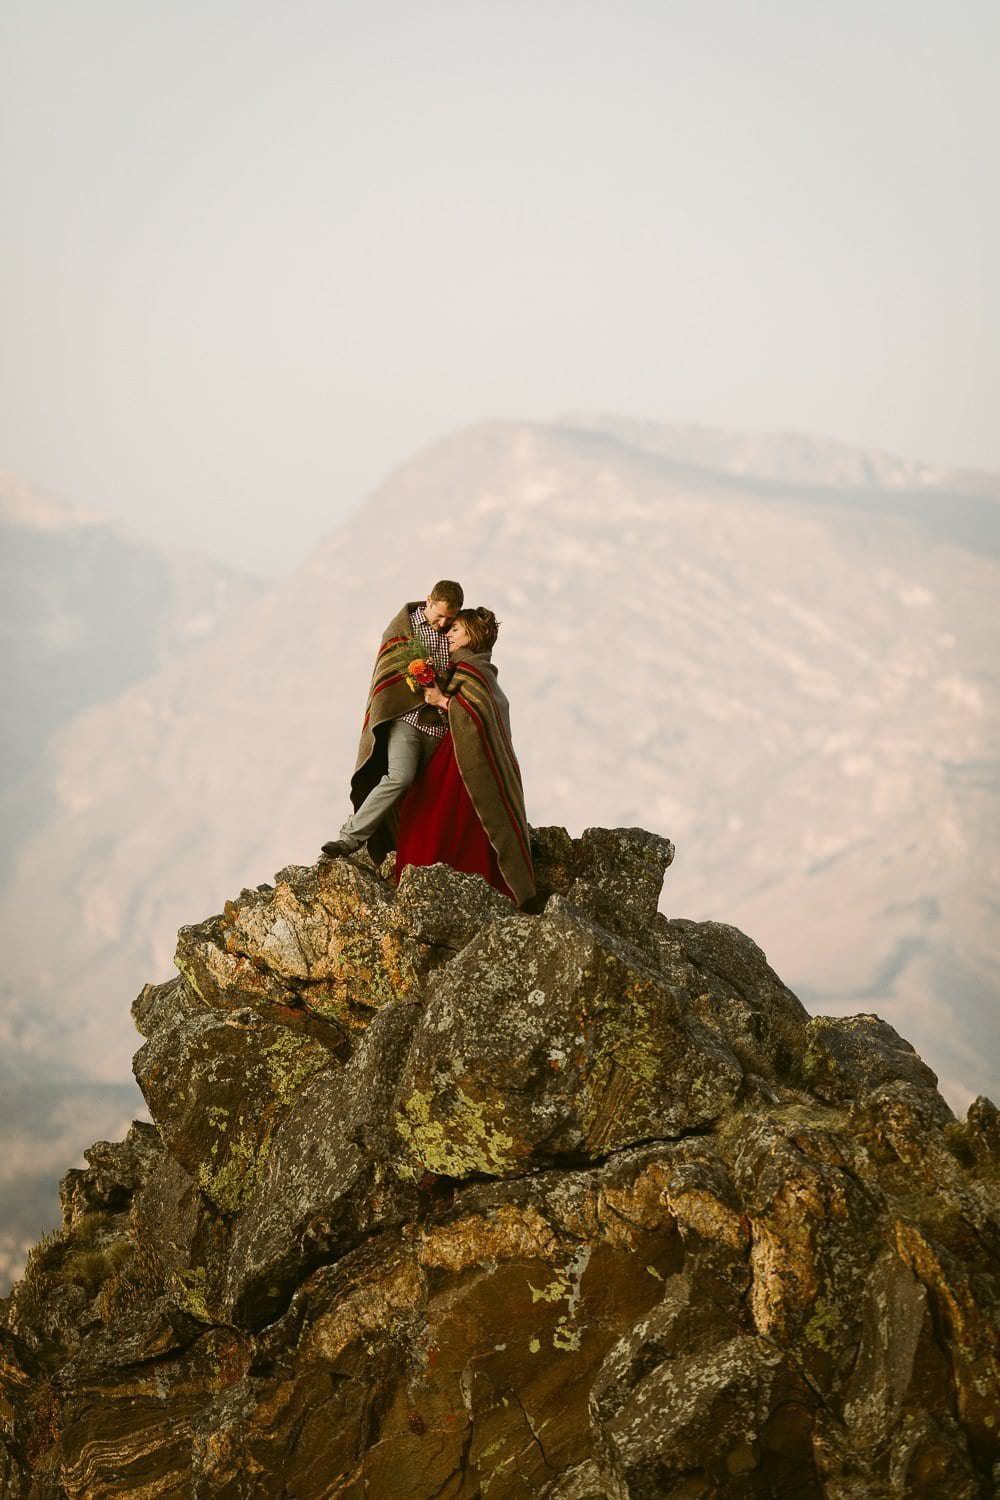 ROCKY MOUNTAIN ADVENTURE ELOPEMENT|ADVENTURE WEDDING PHOTOGRAPHER |3M CURVE CEREMONY ELOPEMENT|TRAIL RIDGE ROAD ADVENTURE | JESSIKA+NICK